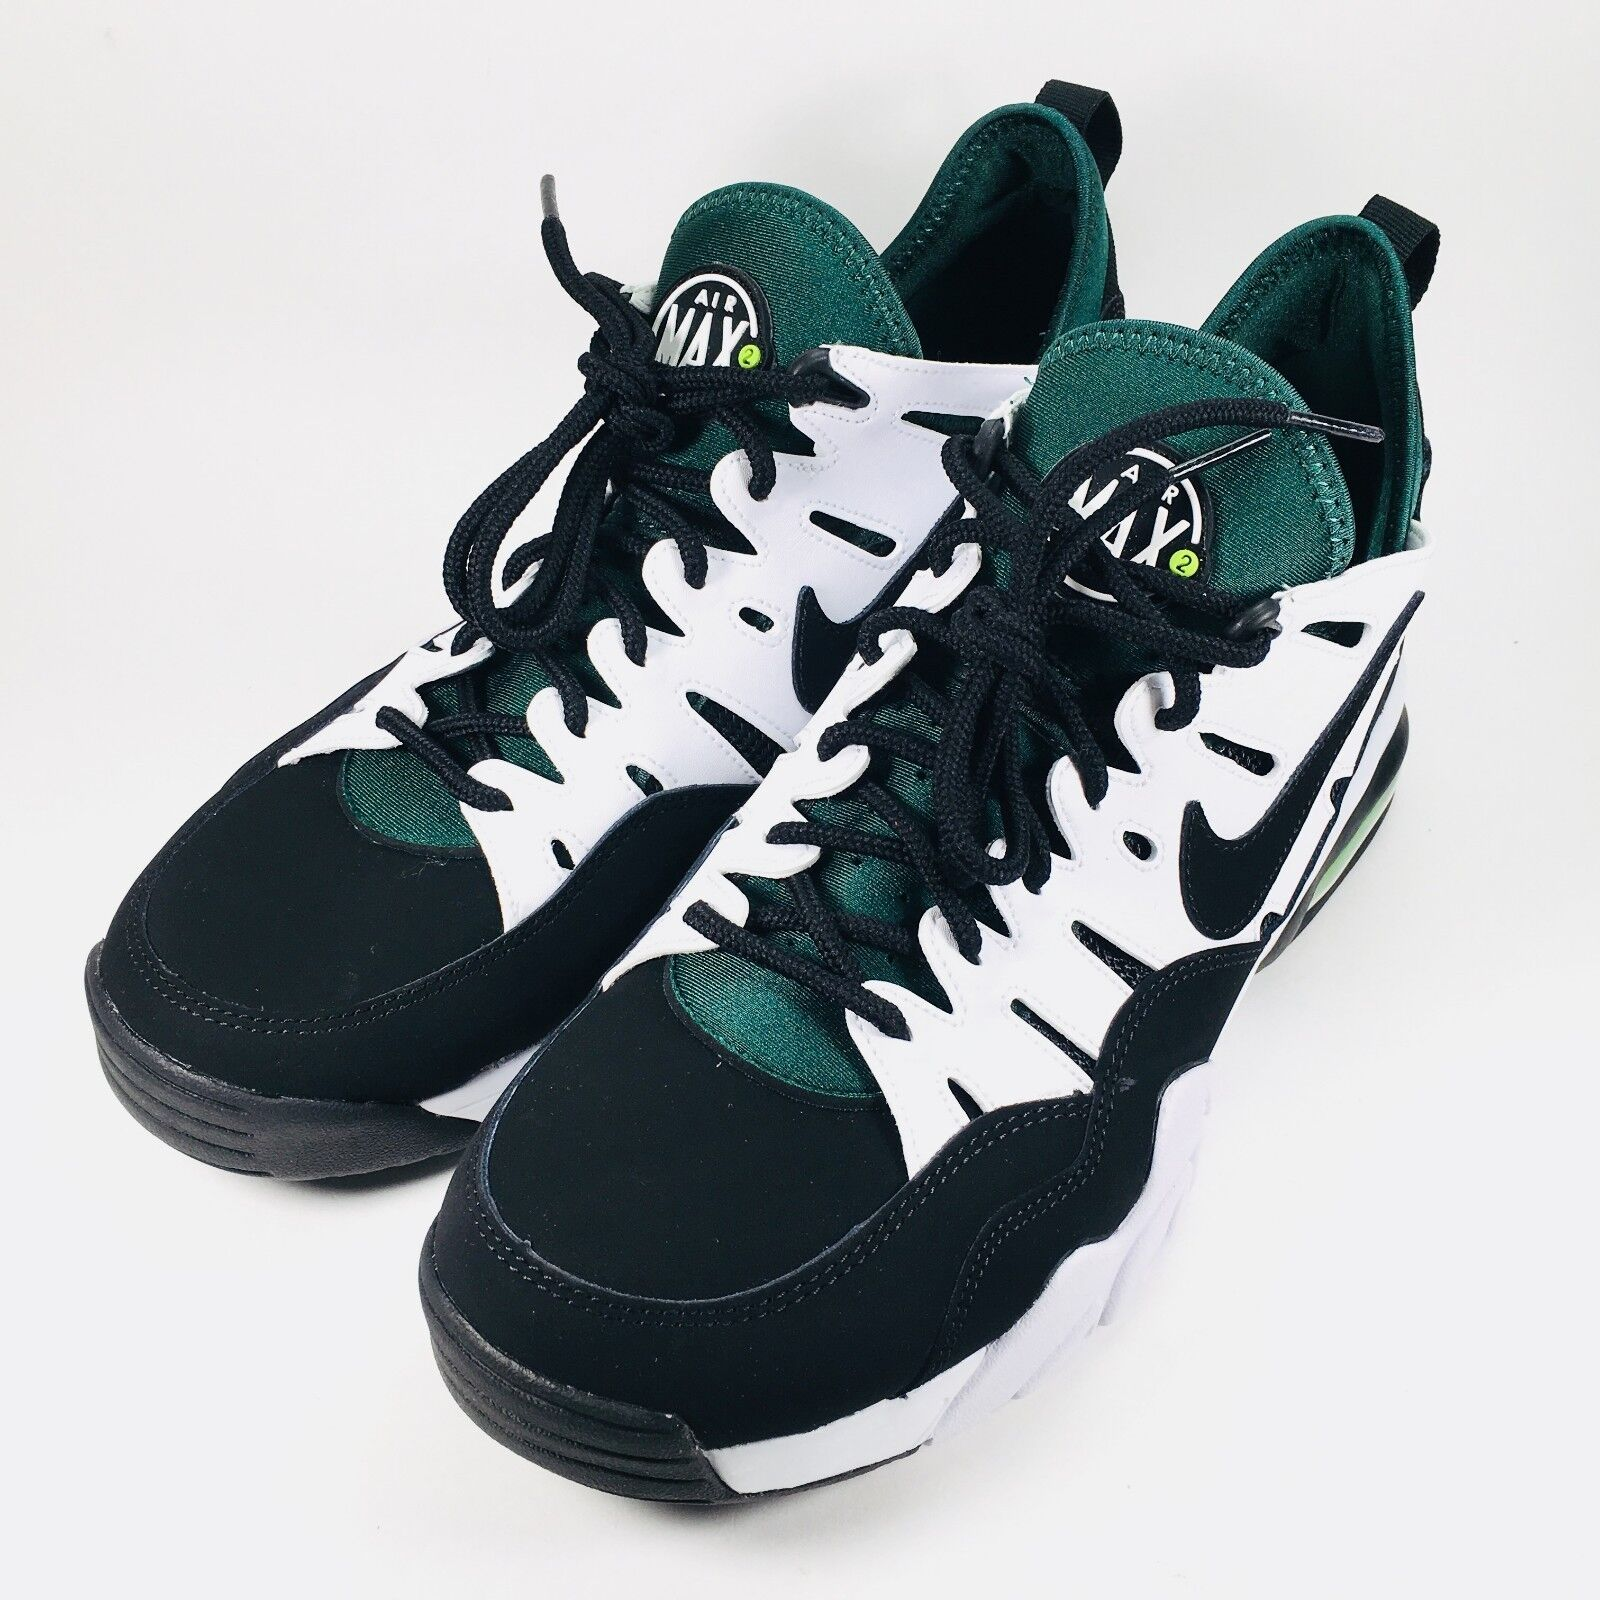 best service 52040 1a2d8 ... hot nike 10 air trainer max 94 low s size 10 nike black green white dark